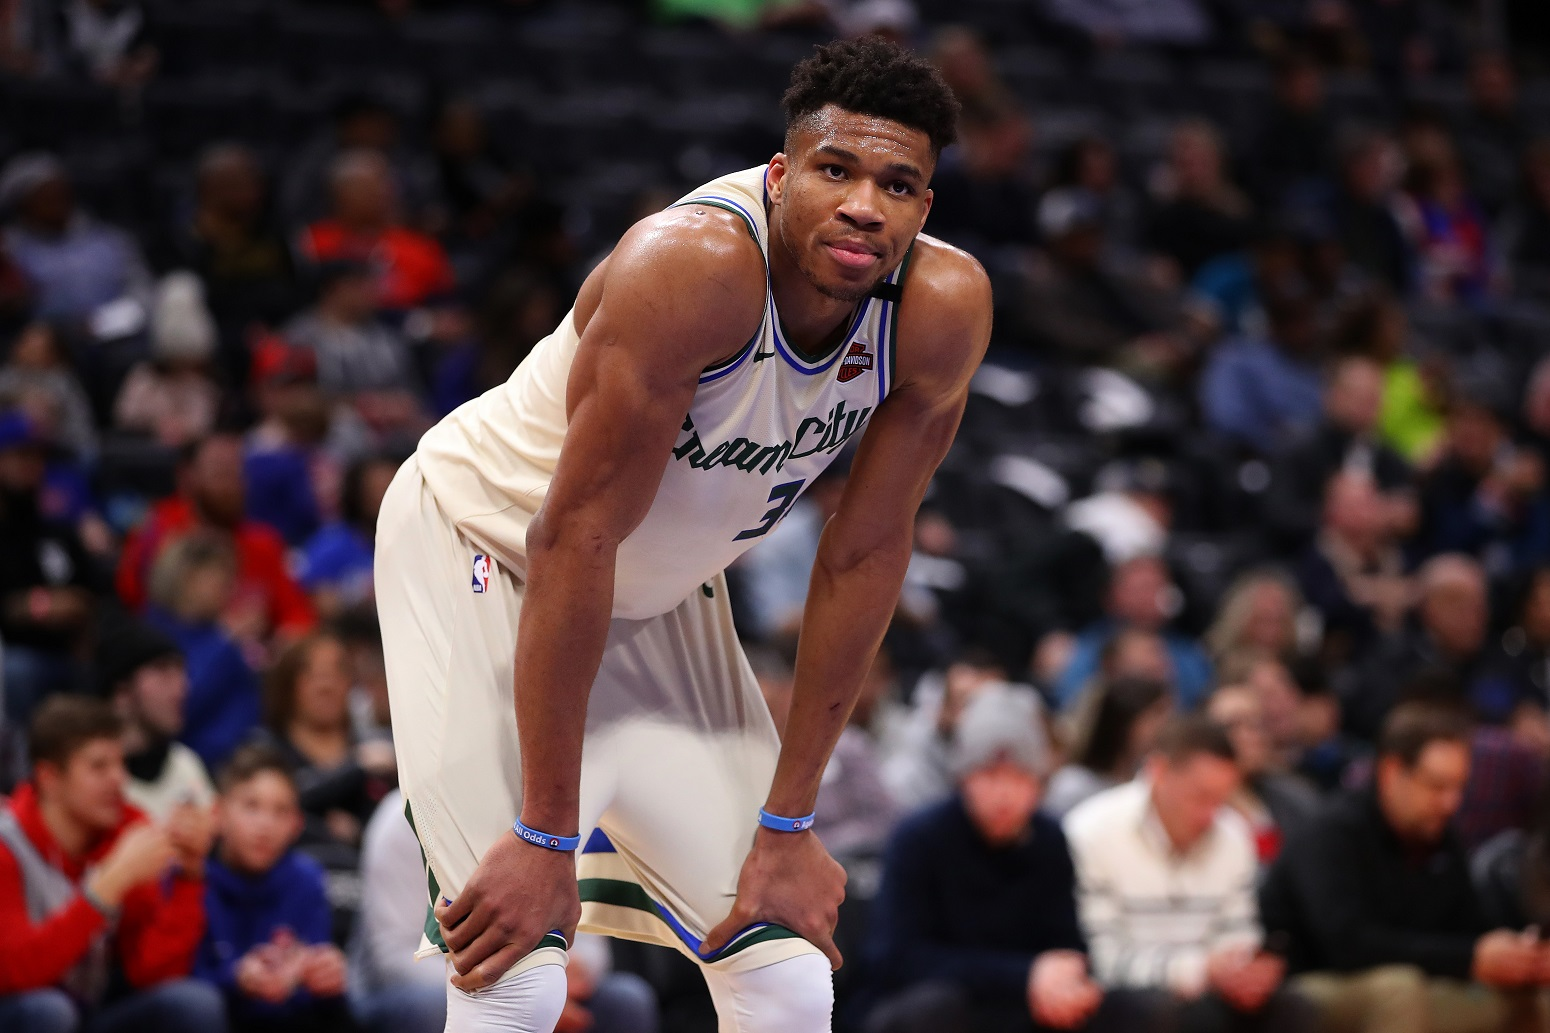 Giannis Antetokounmpo Won't Regret Leaving the Bucks for This NBA Title Contender